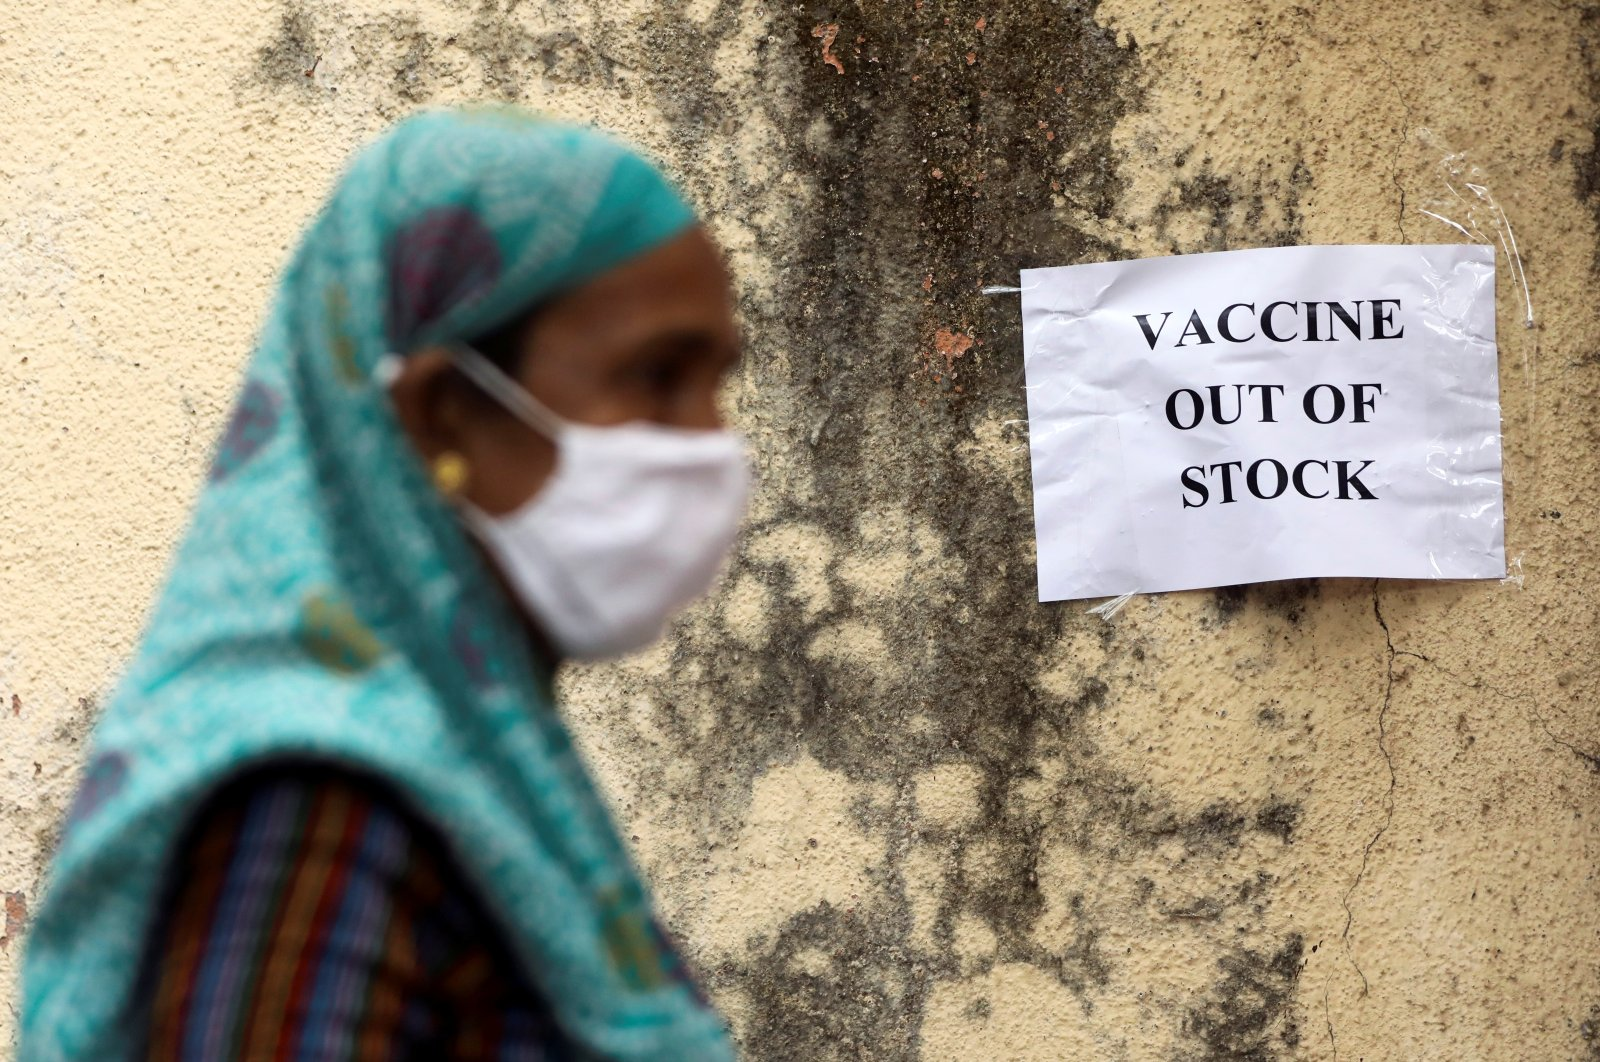 A notice about the shortage of COVID-19 vaccine supplies is seen at a vaccination center, in Mumbai, India, April 8, 2021. (Reuters Photo)